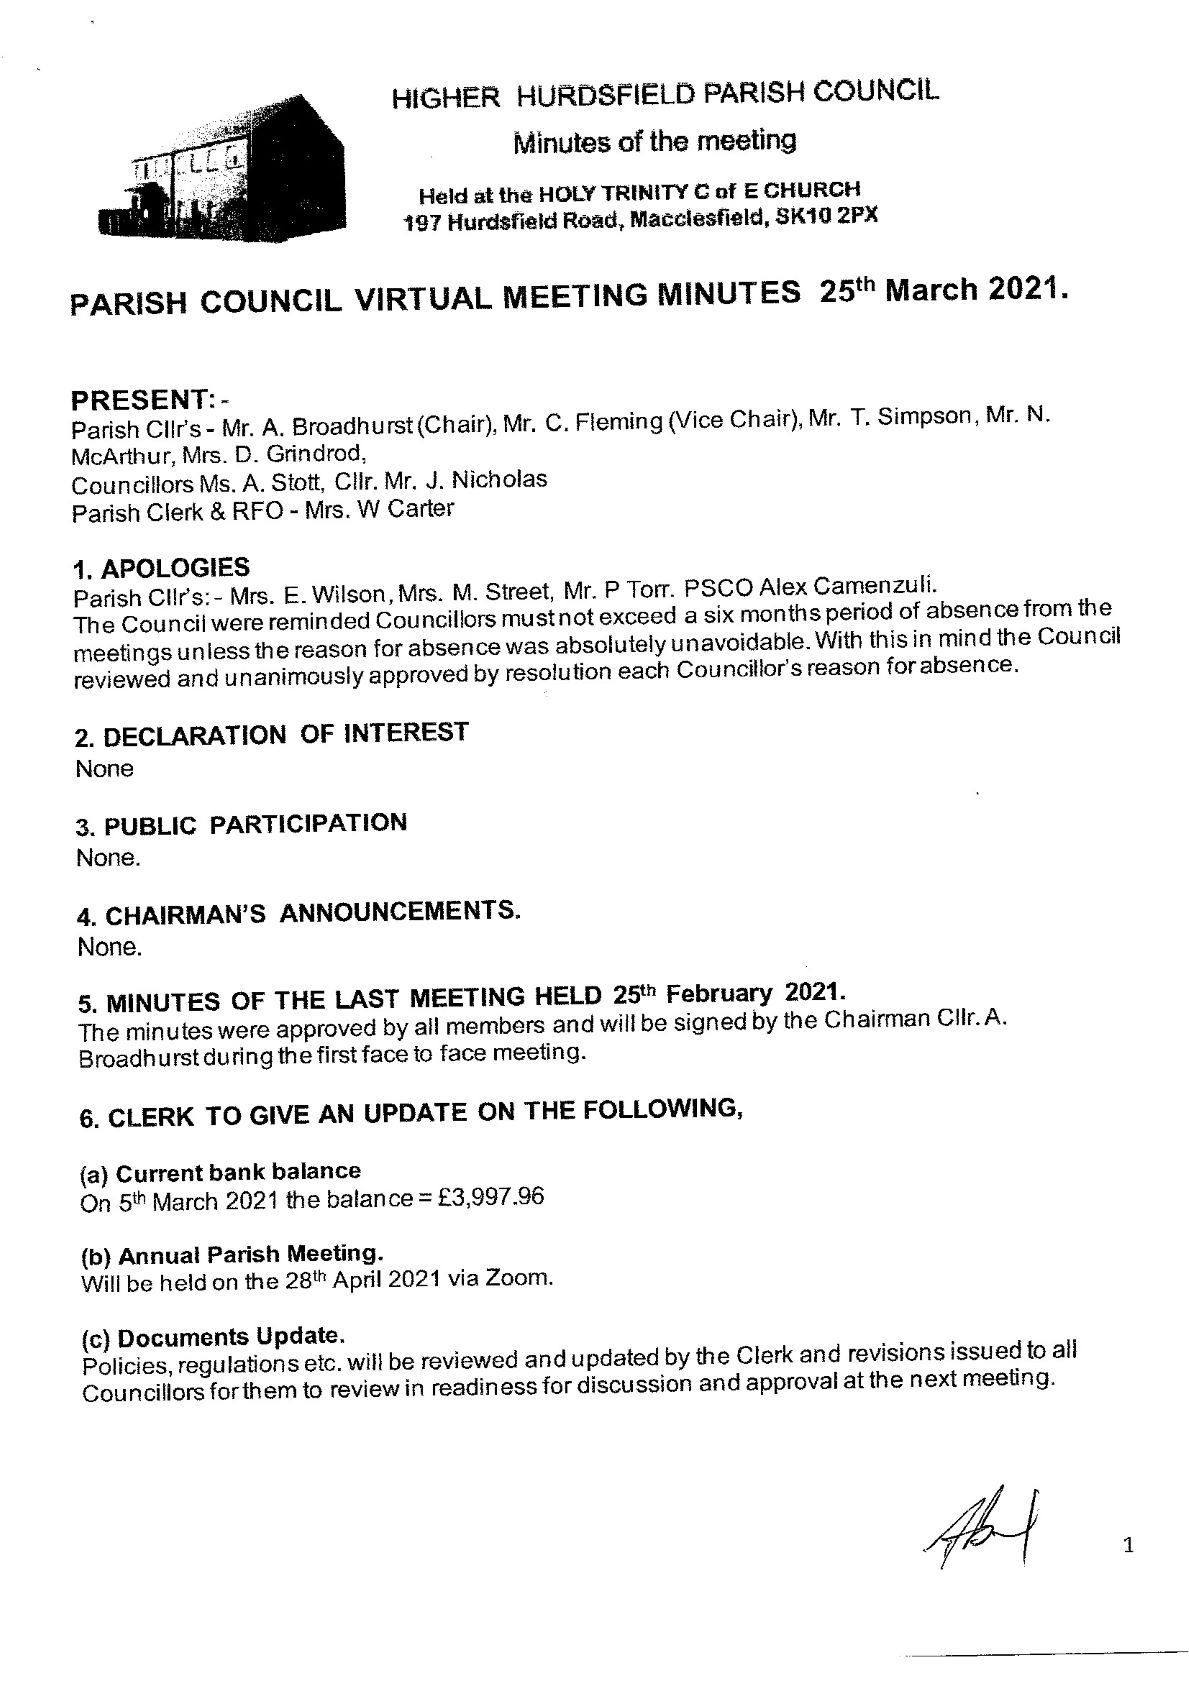 Signed Minutes of Meeting 1 of 4